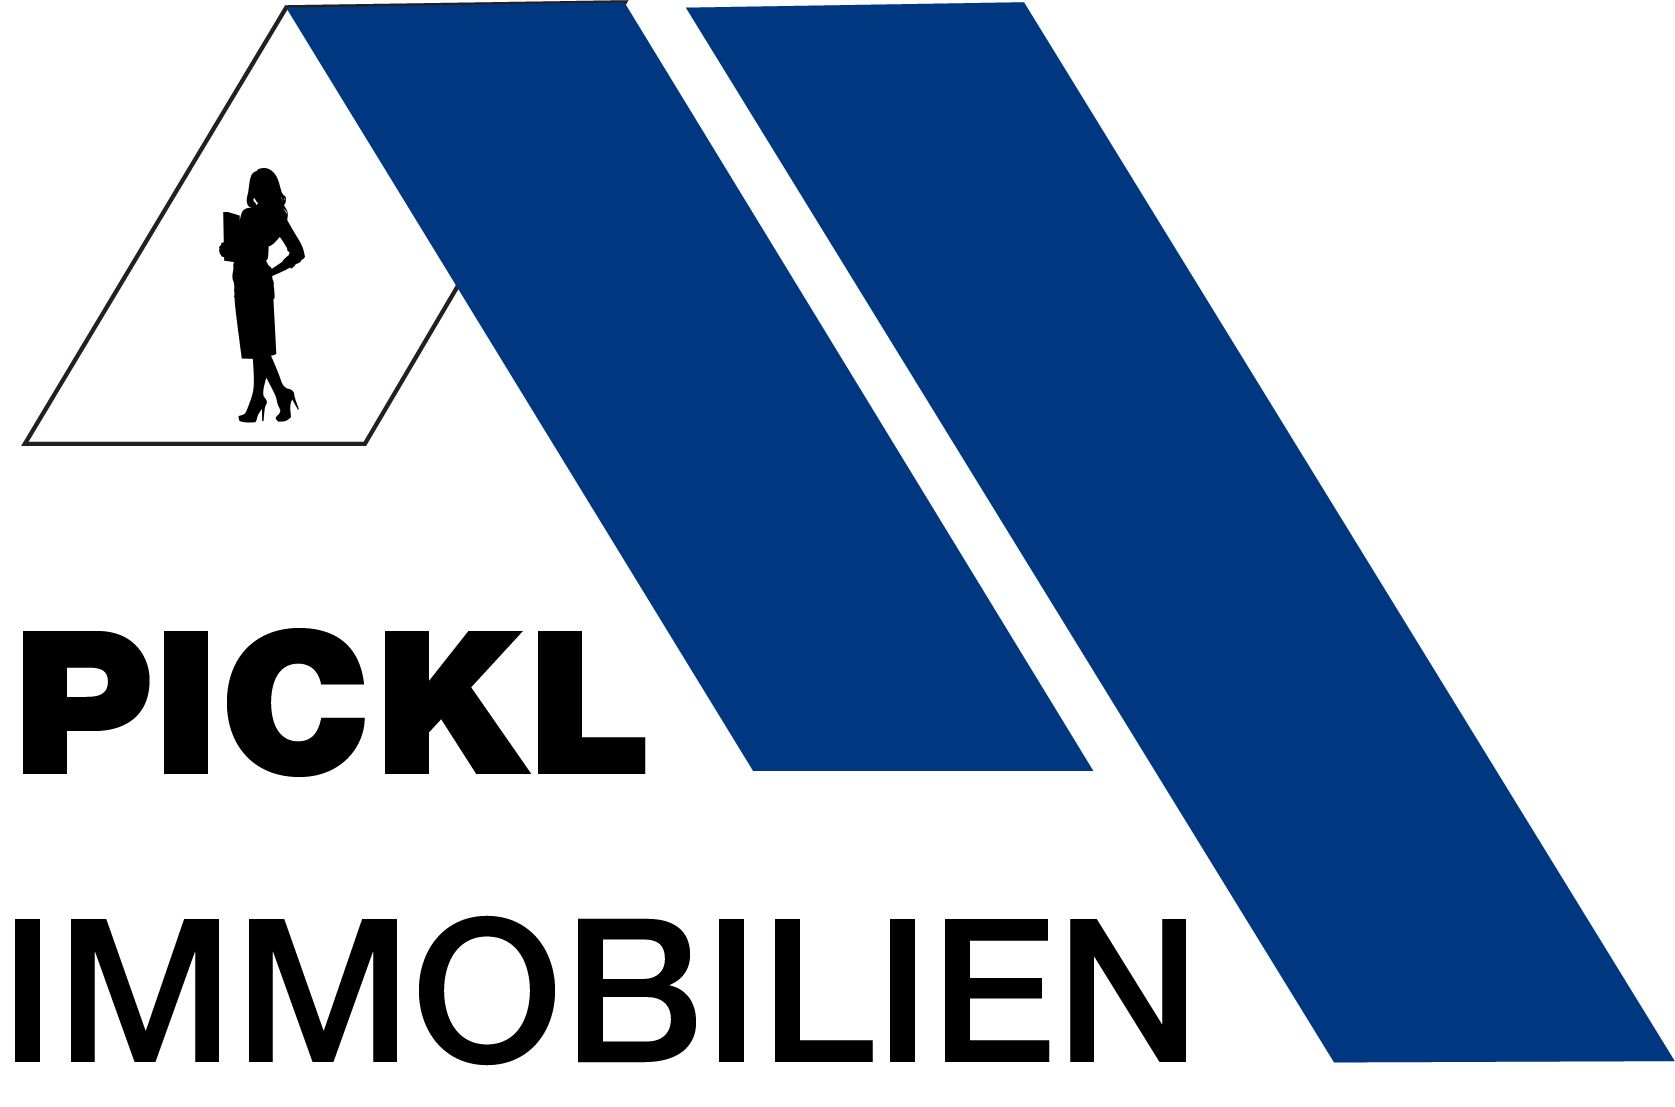 Pickl Immobilien